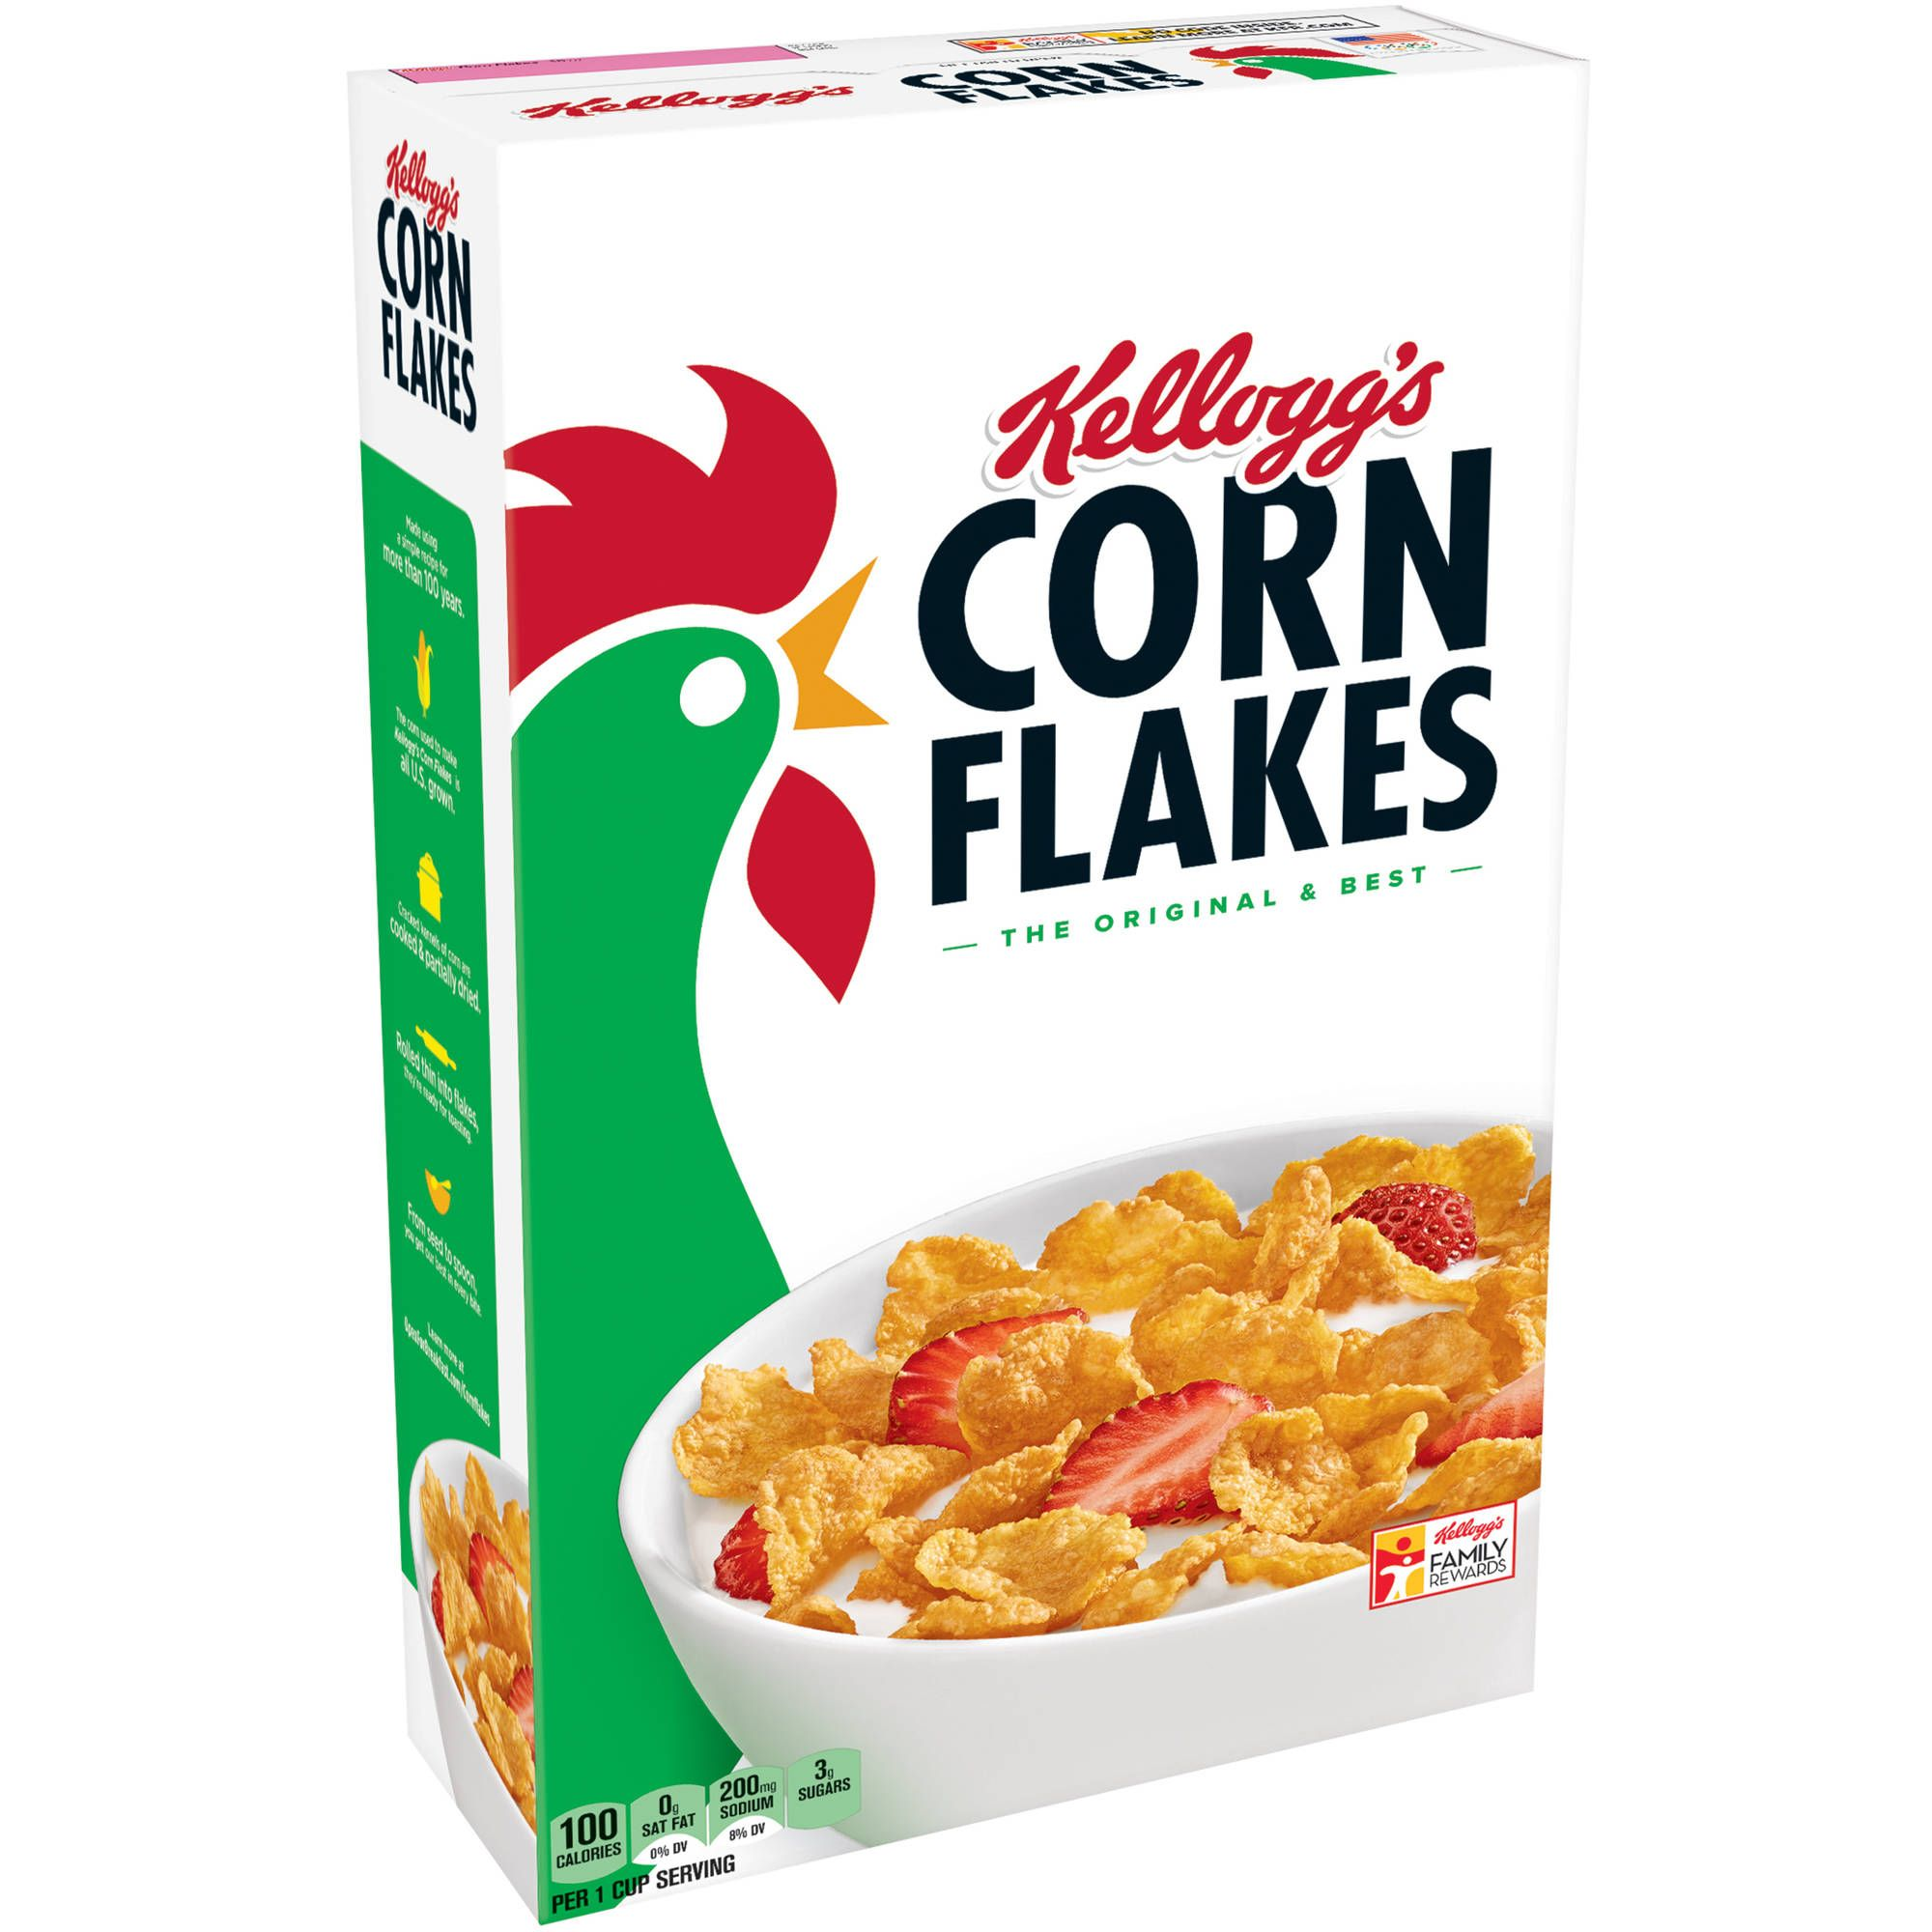 Corn Flakes Cereal Calories